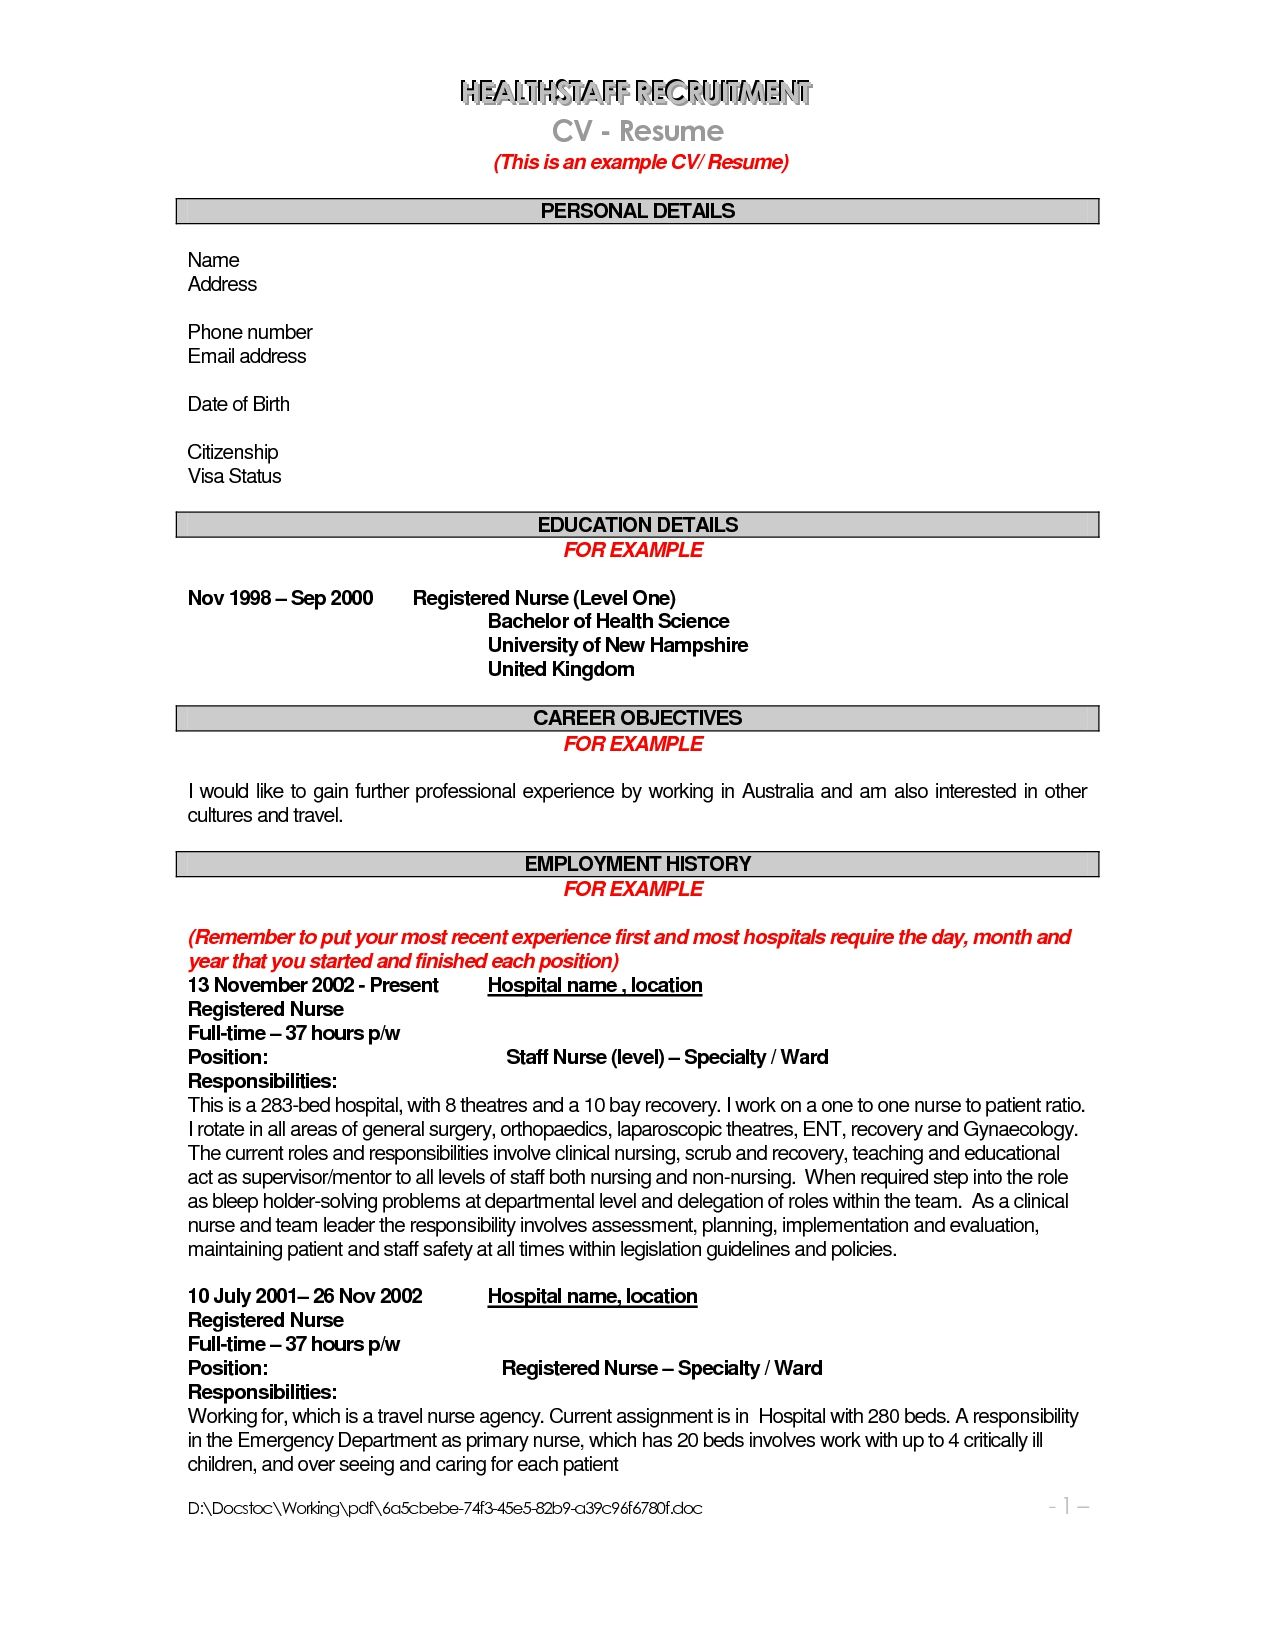 Samples Of Objectives For A Resume Simple Resume Job Description Cover Letter Template Sample Resumes .